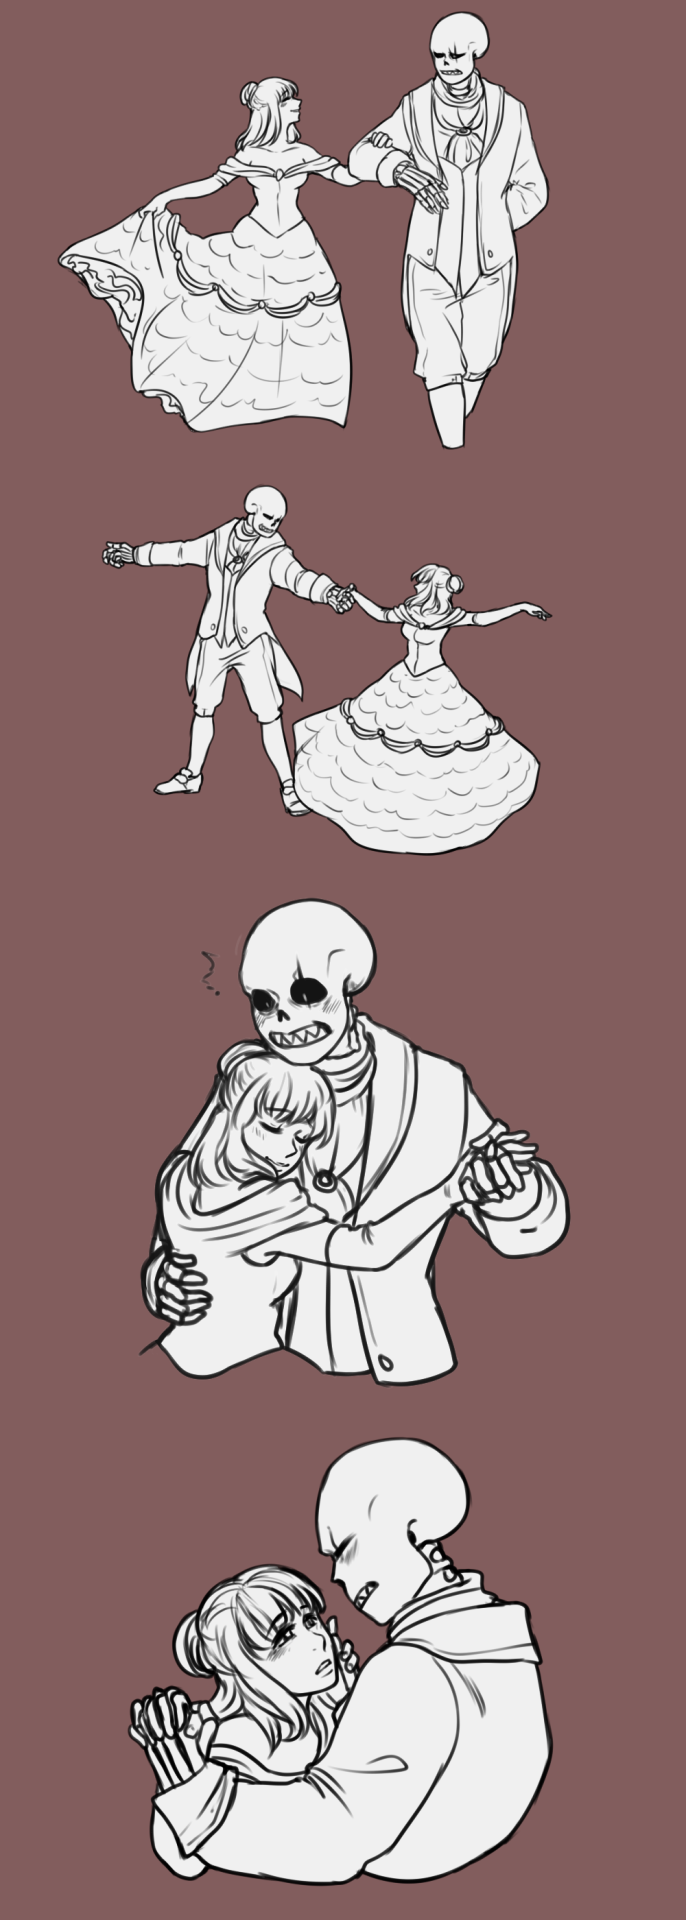 SO I got so hyped when thiiiishttp://fairyfell.tumblr.com/post/152749346644/happy-belate-halloweenwas posted and as a...